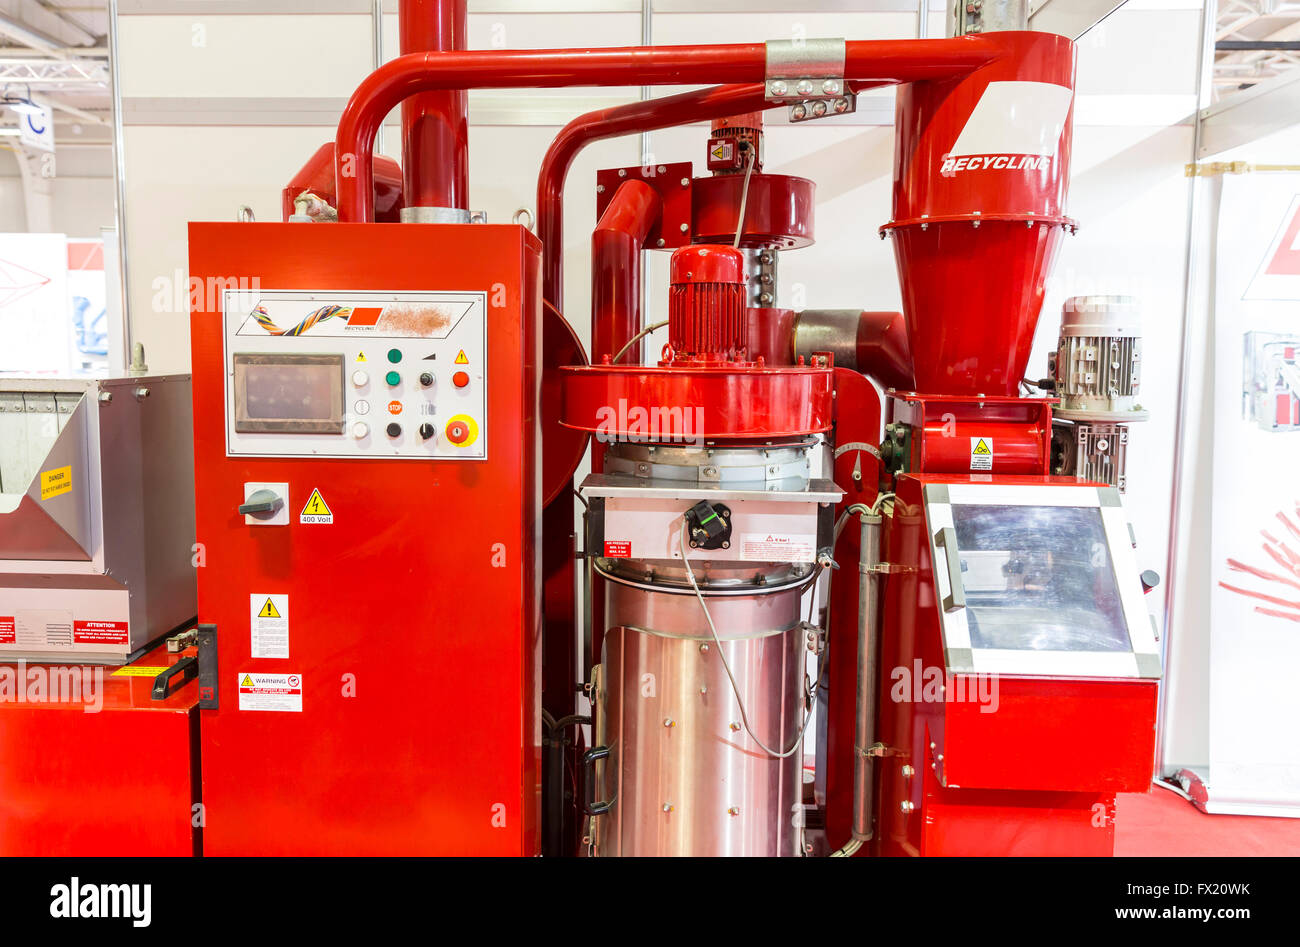 Red recycling machine. Recycles plastic and glass bottles. Control panel with computer monitor and different buttons. - Stock Image